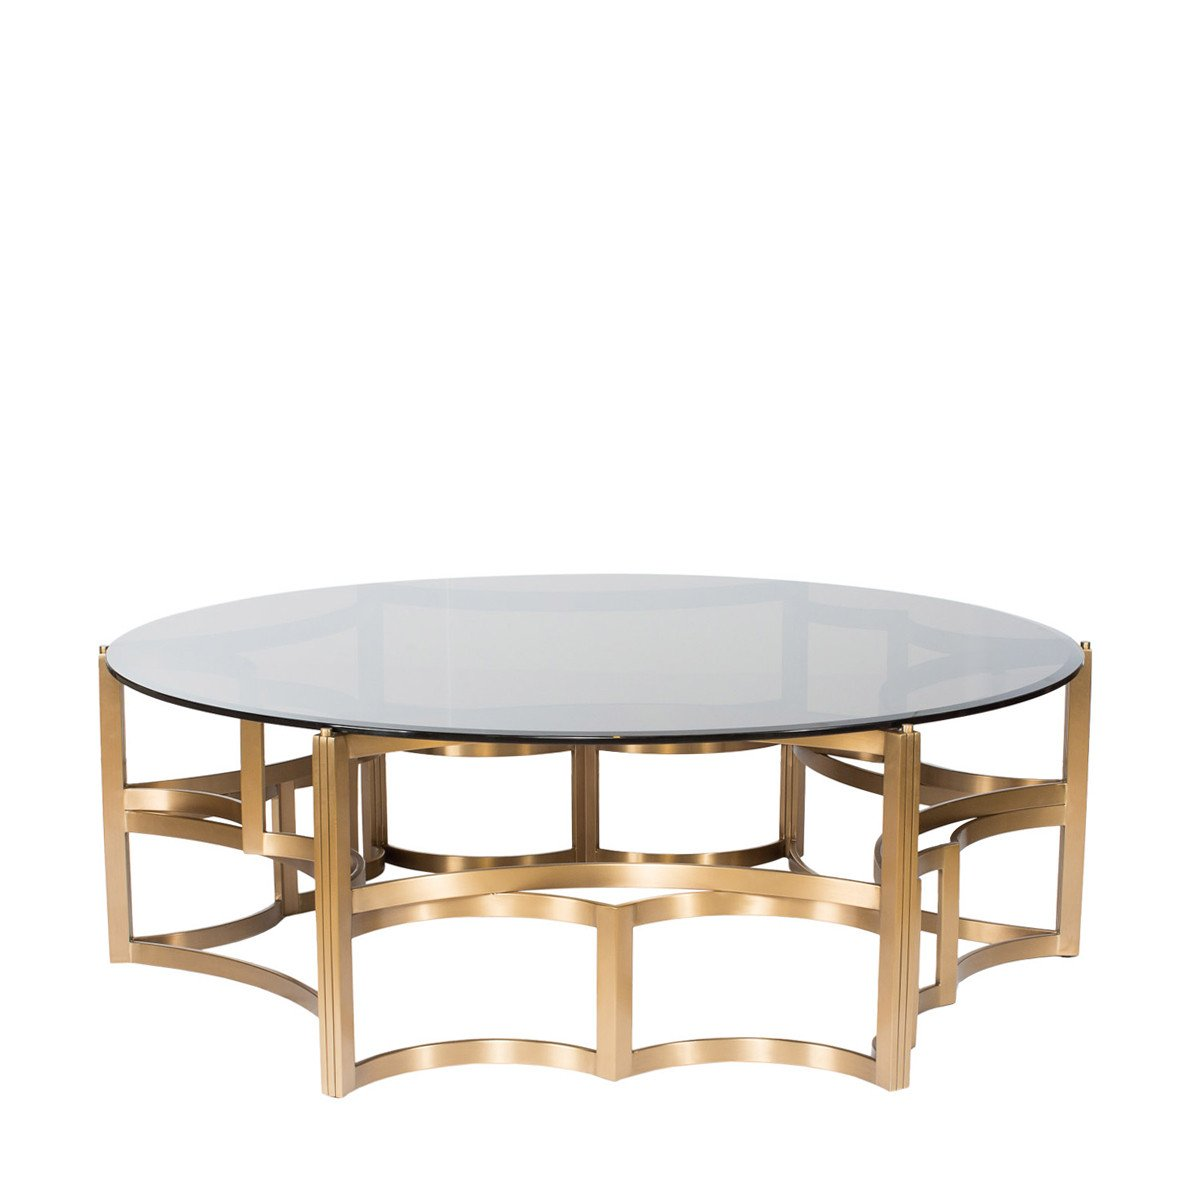 gold coffee table curations limited accent dining percussion bell kit round hammered metal large grey clock pottery barn tablecloths cordless lamps garden umbrellas leather bean